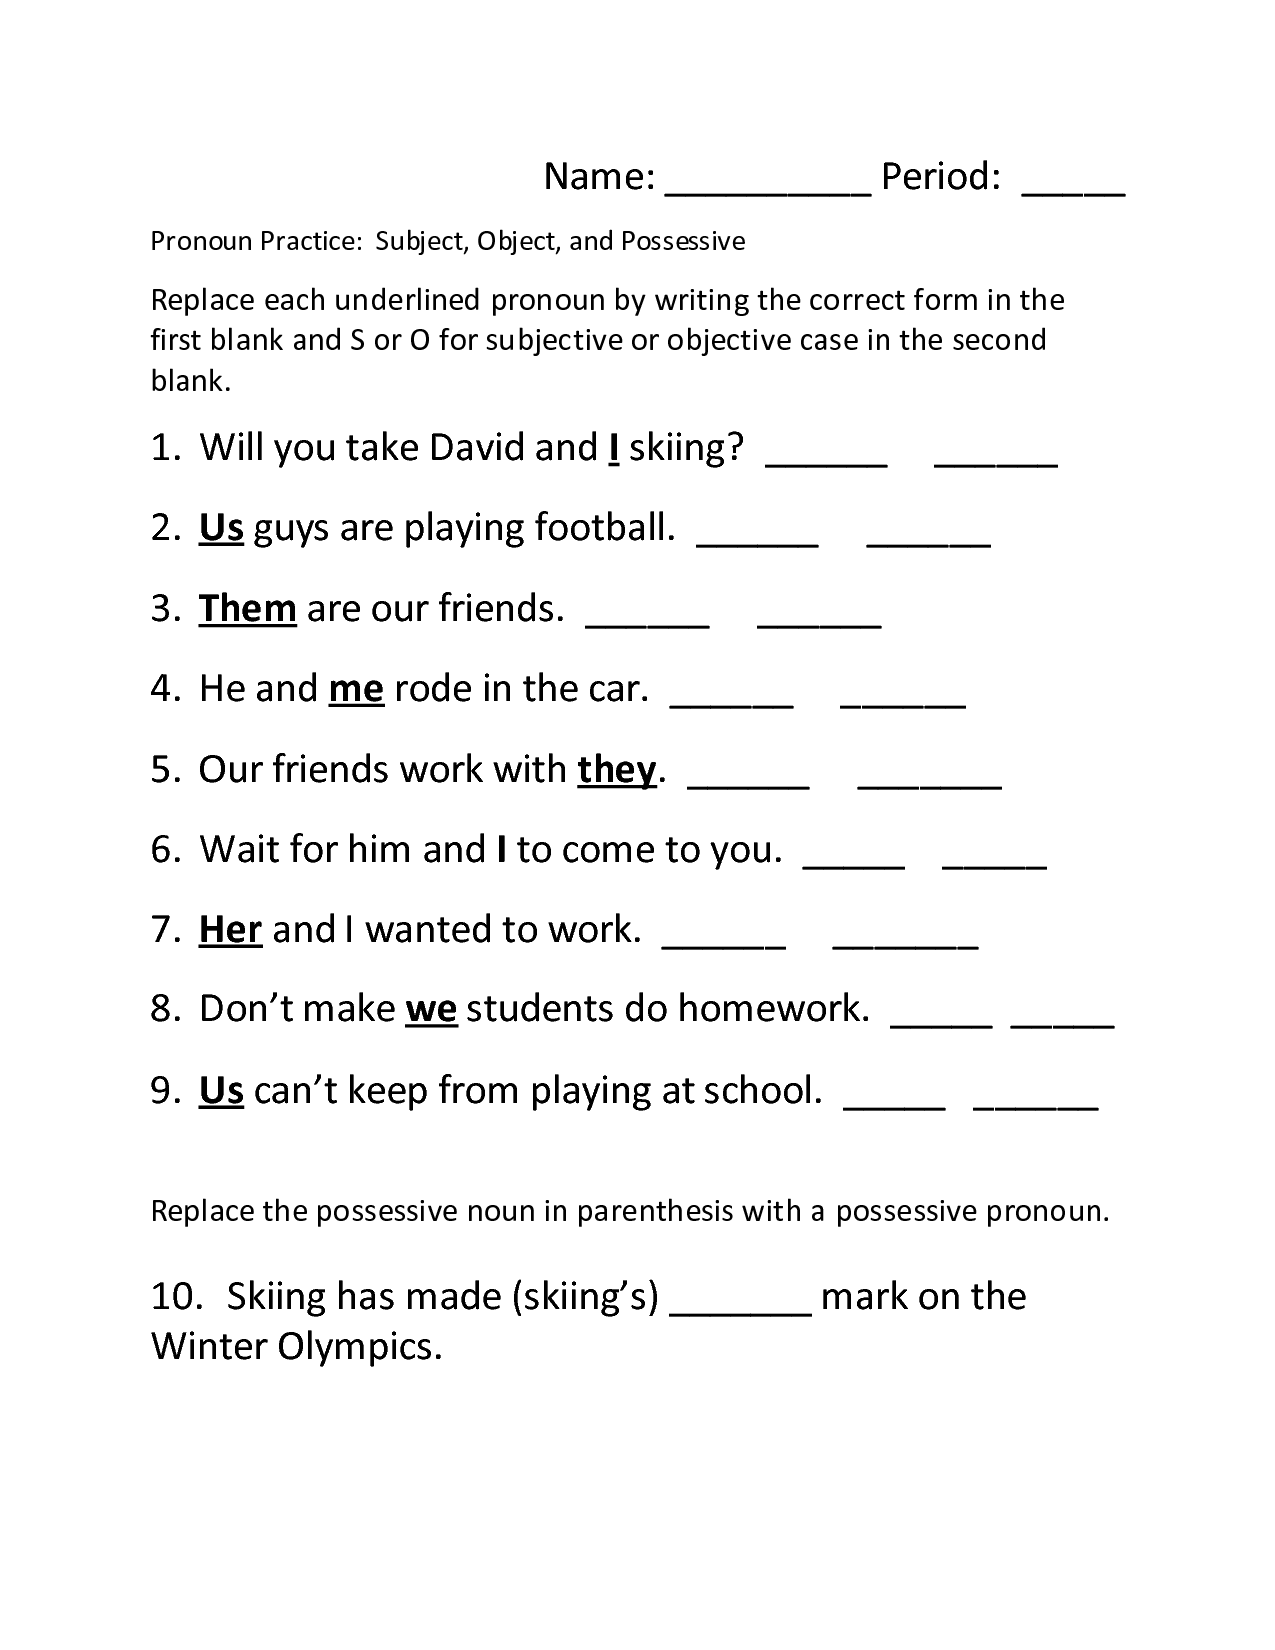 16 Best Images Of Spanish Pronoun Worksheet Printable